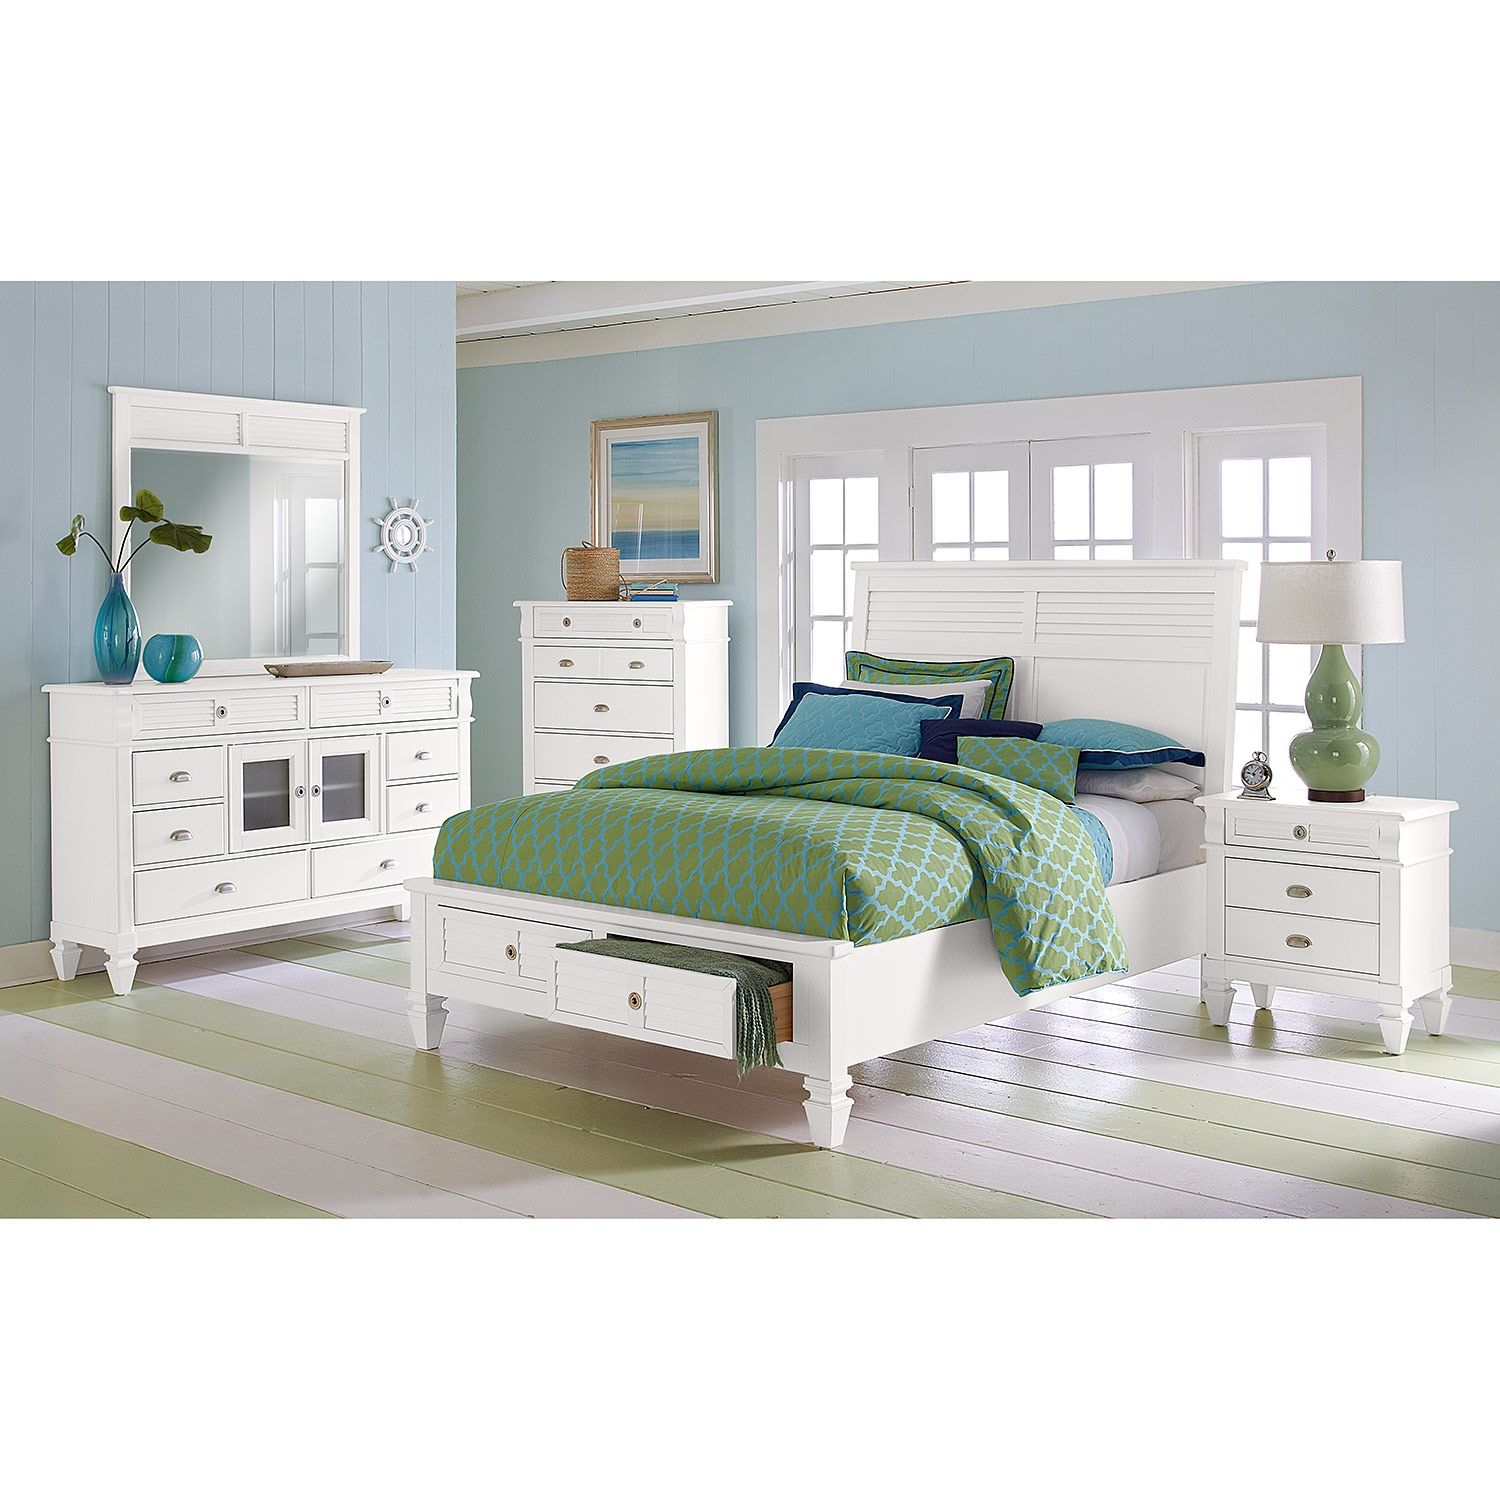 American Signature Furniture - Charleston Bay White II Bedroom King ...